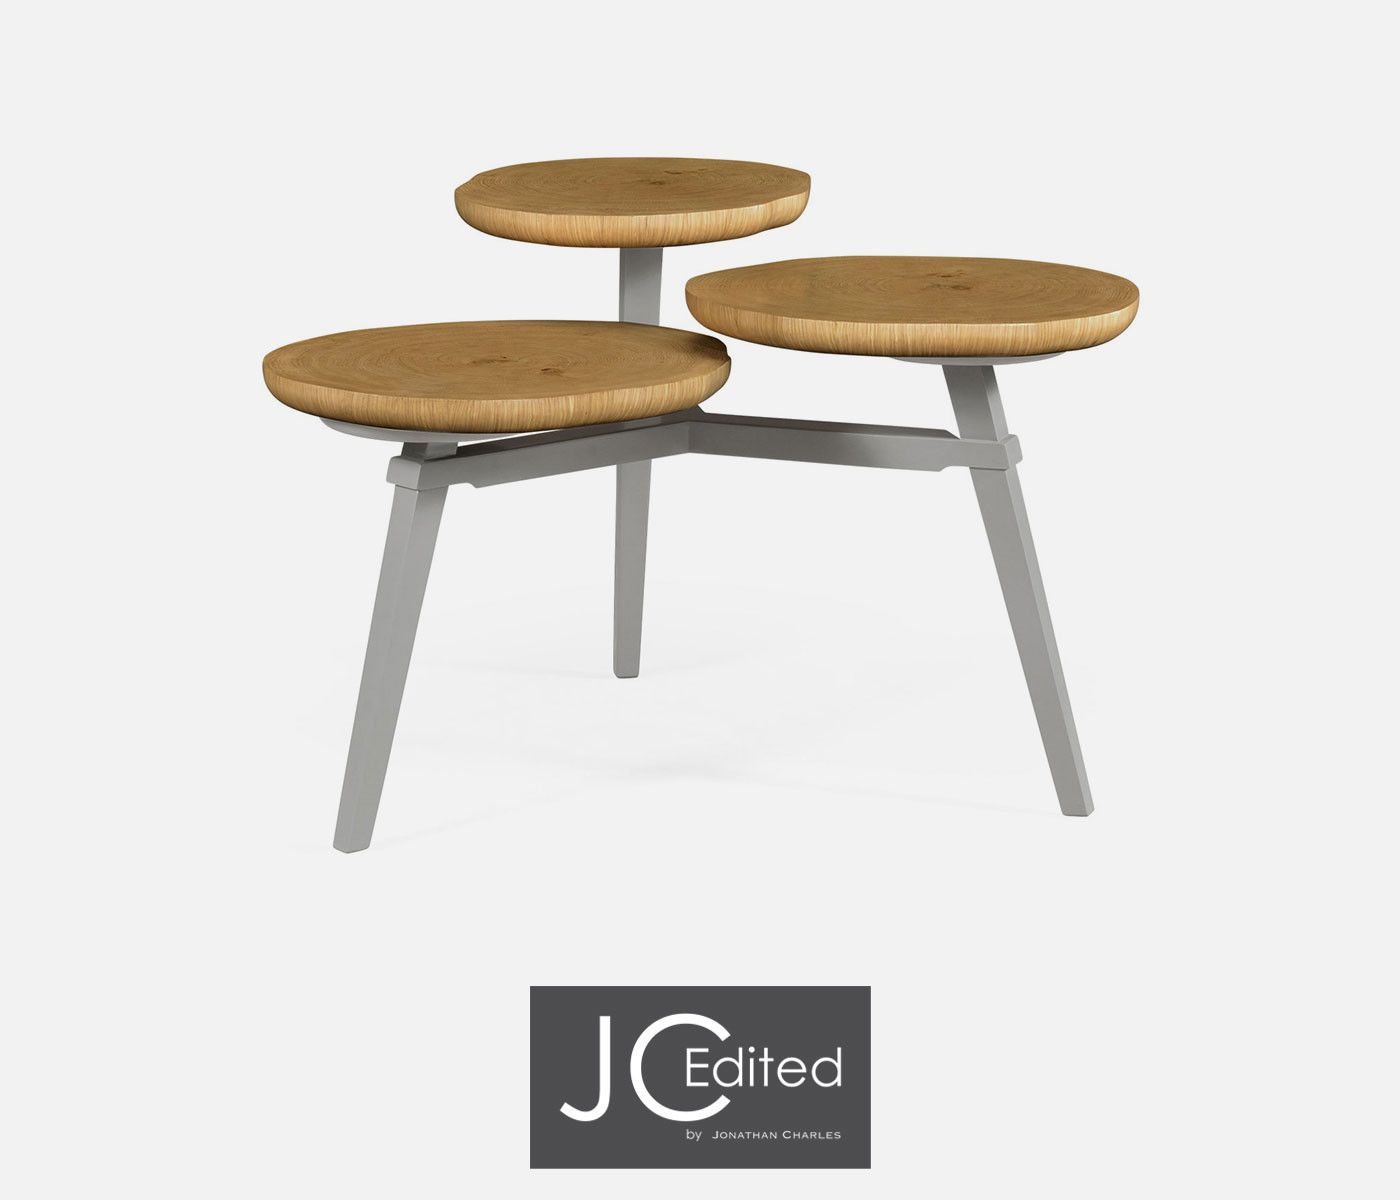 Jonathan charles architectural coffee table with three multi